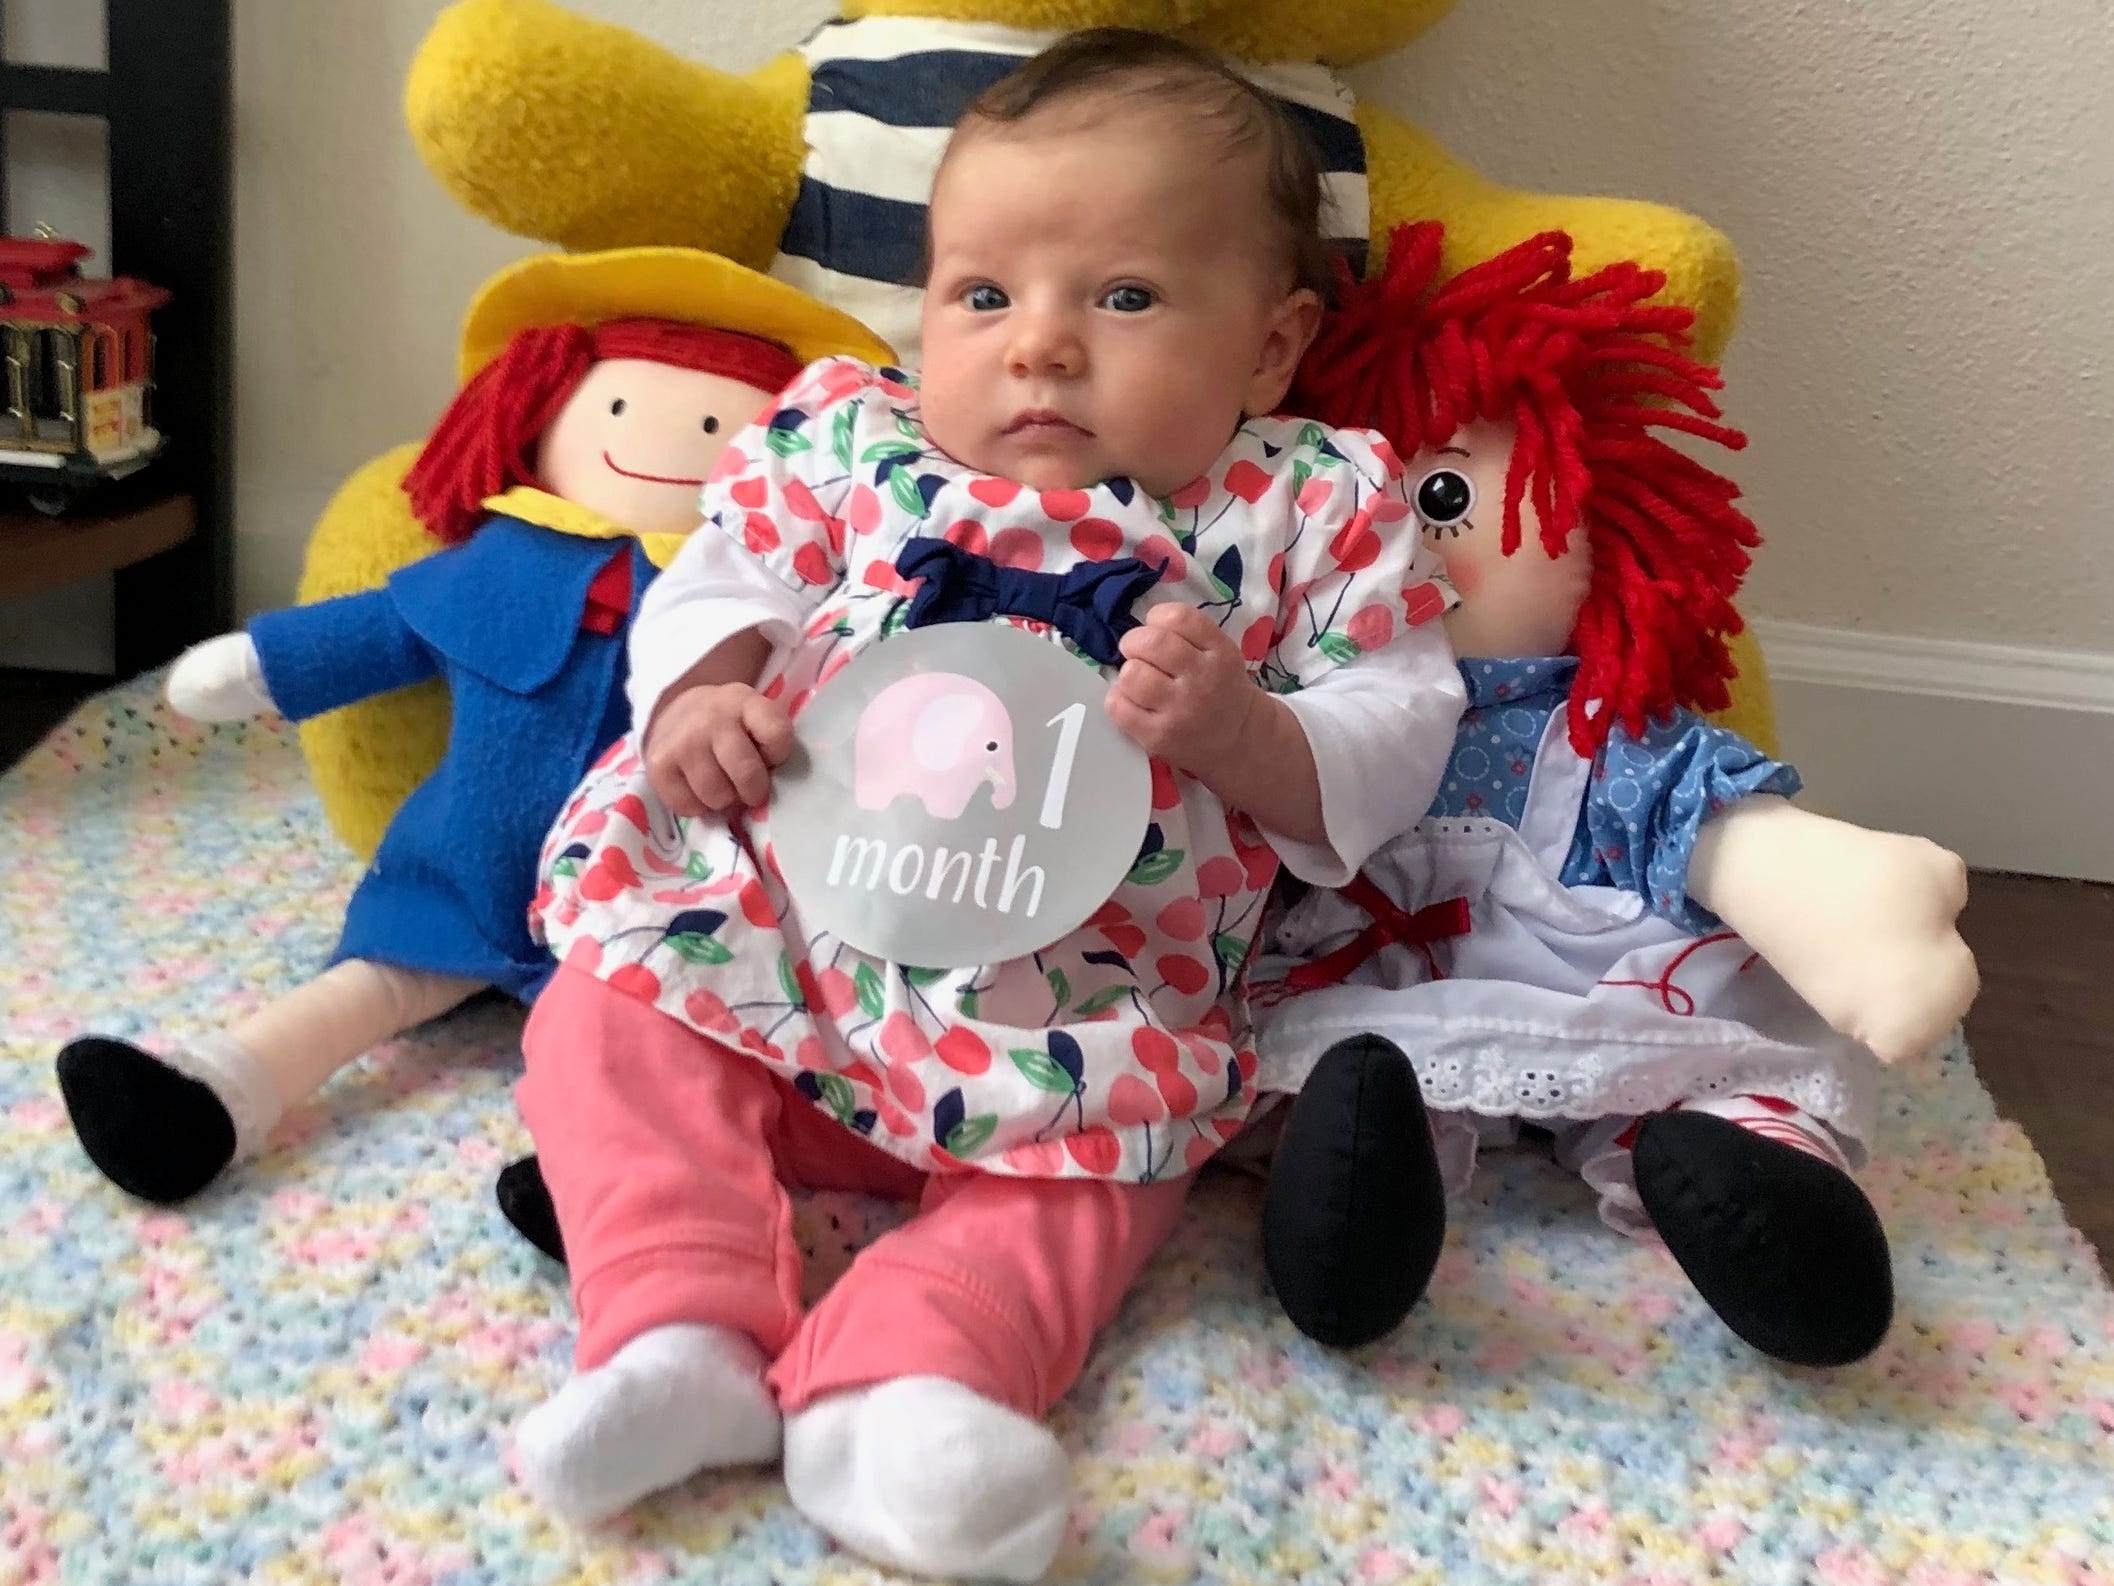 Ginger McCall's 7-week-old daughter, Evianna Quintero-McCall, died of meningitis on Sunday after being discharged from the Salem Hospital emergency room with a fever.